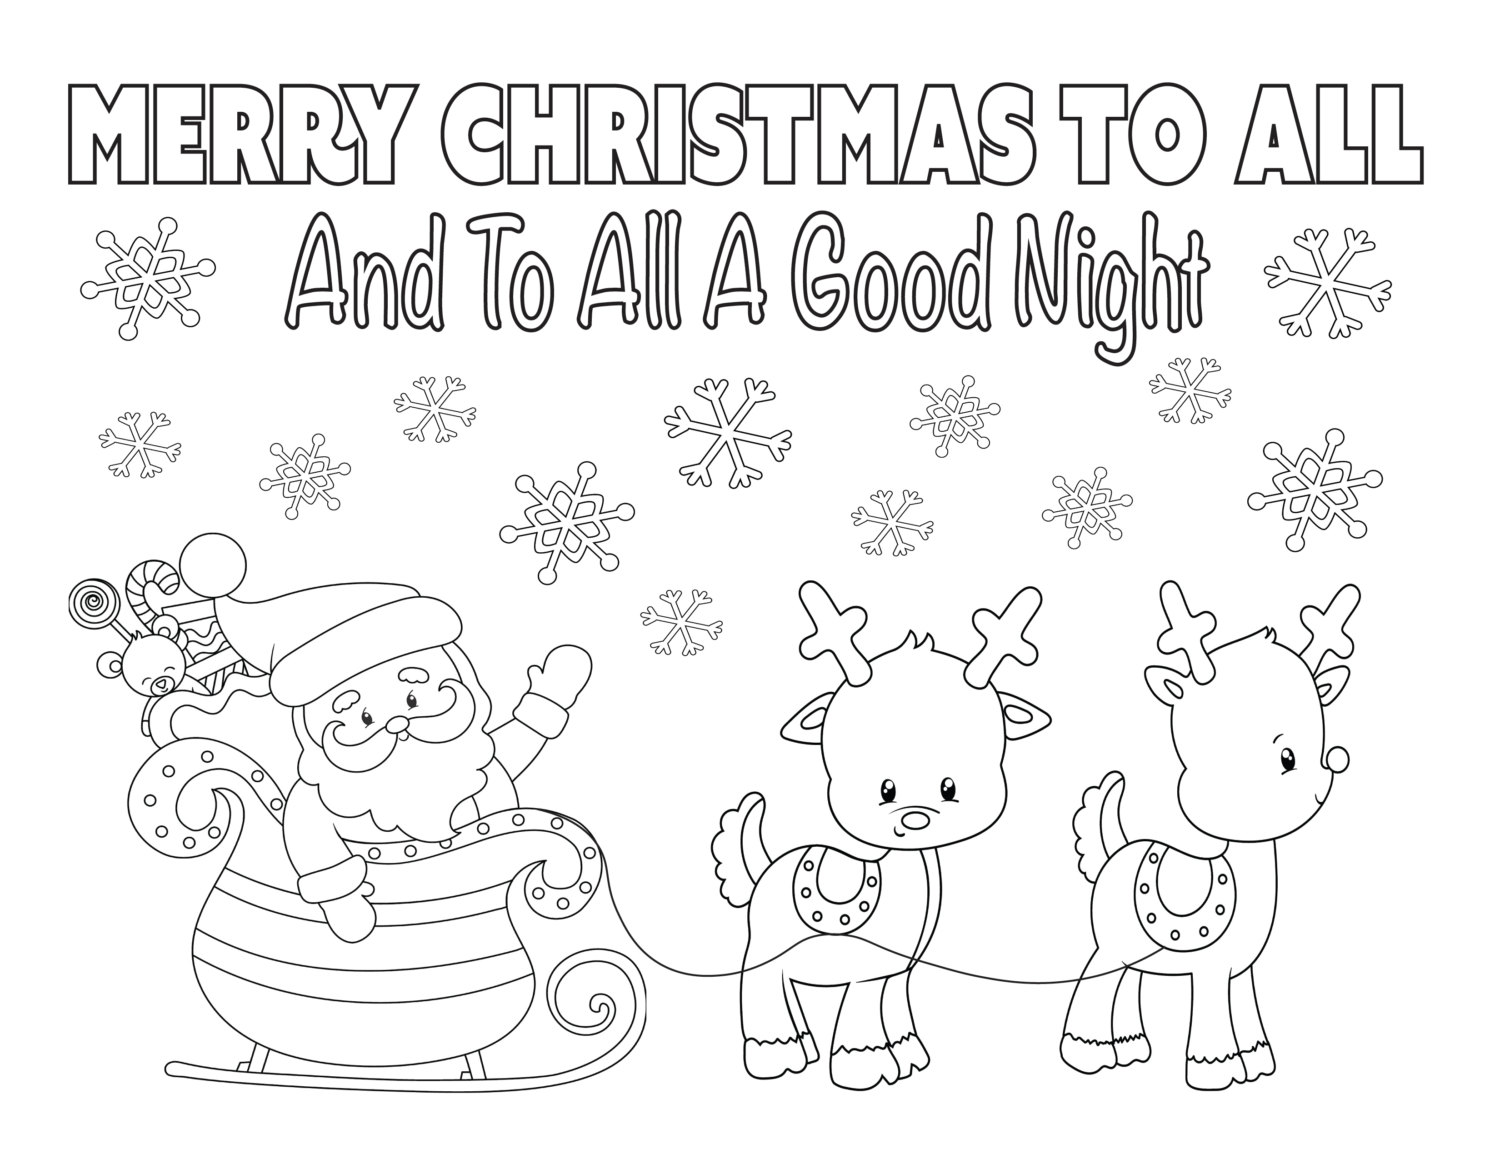 Christmas List Coloring Sheets With Page 8 5x11 Instant Download Printable Etsy